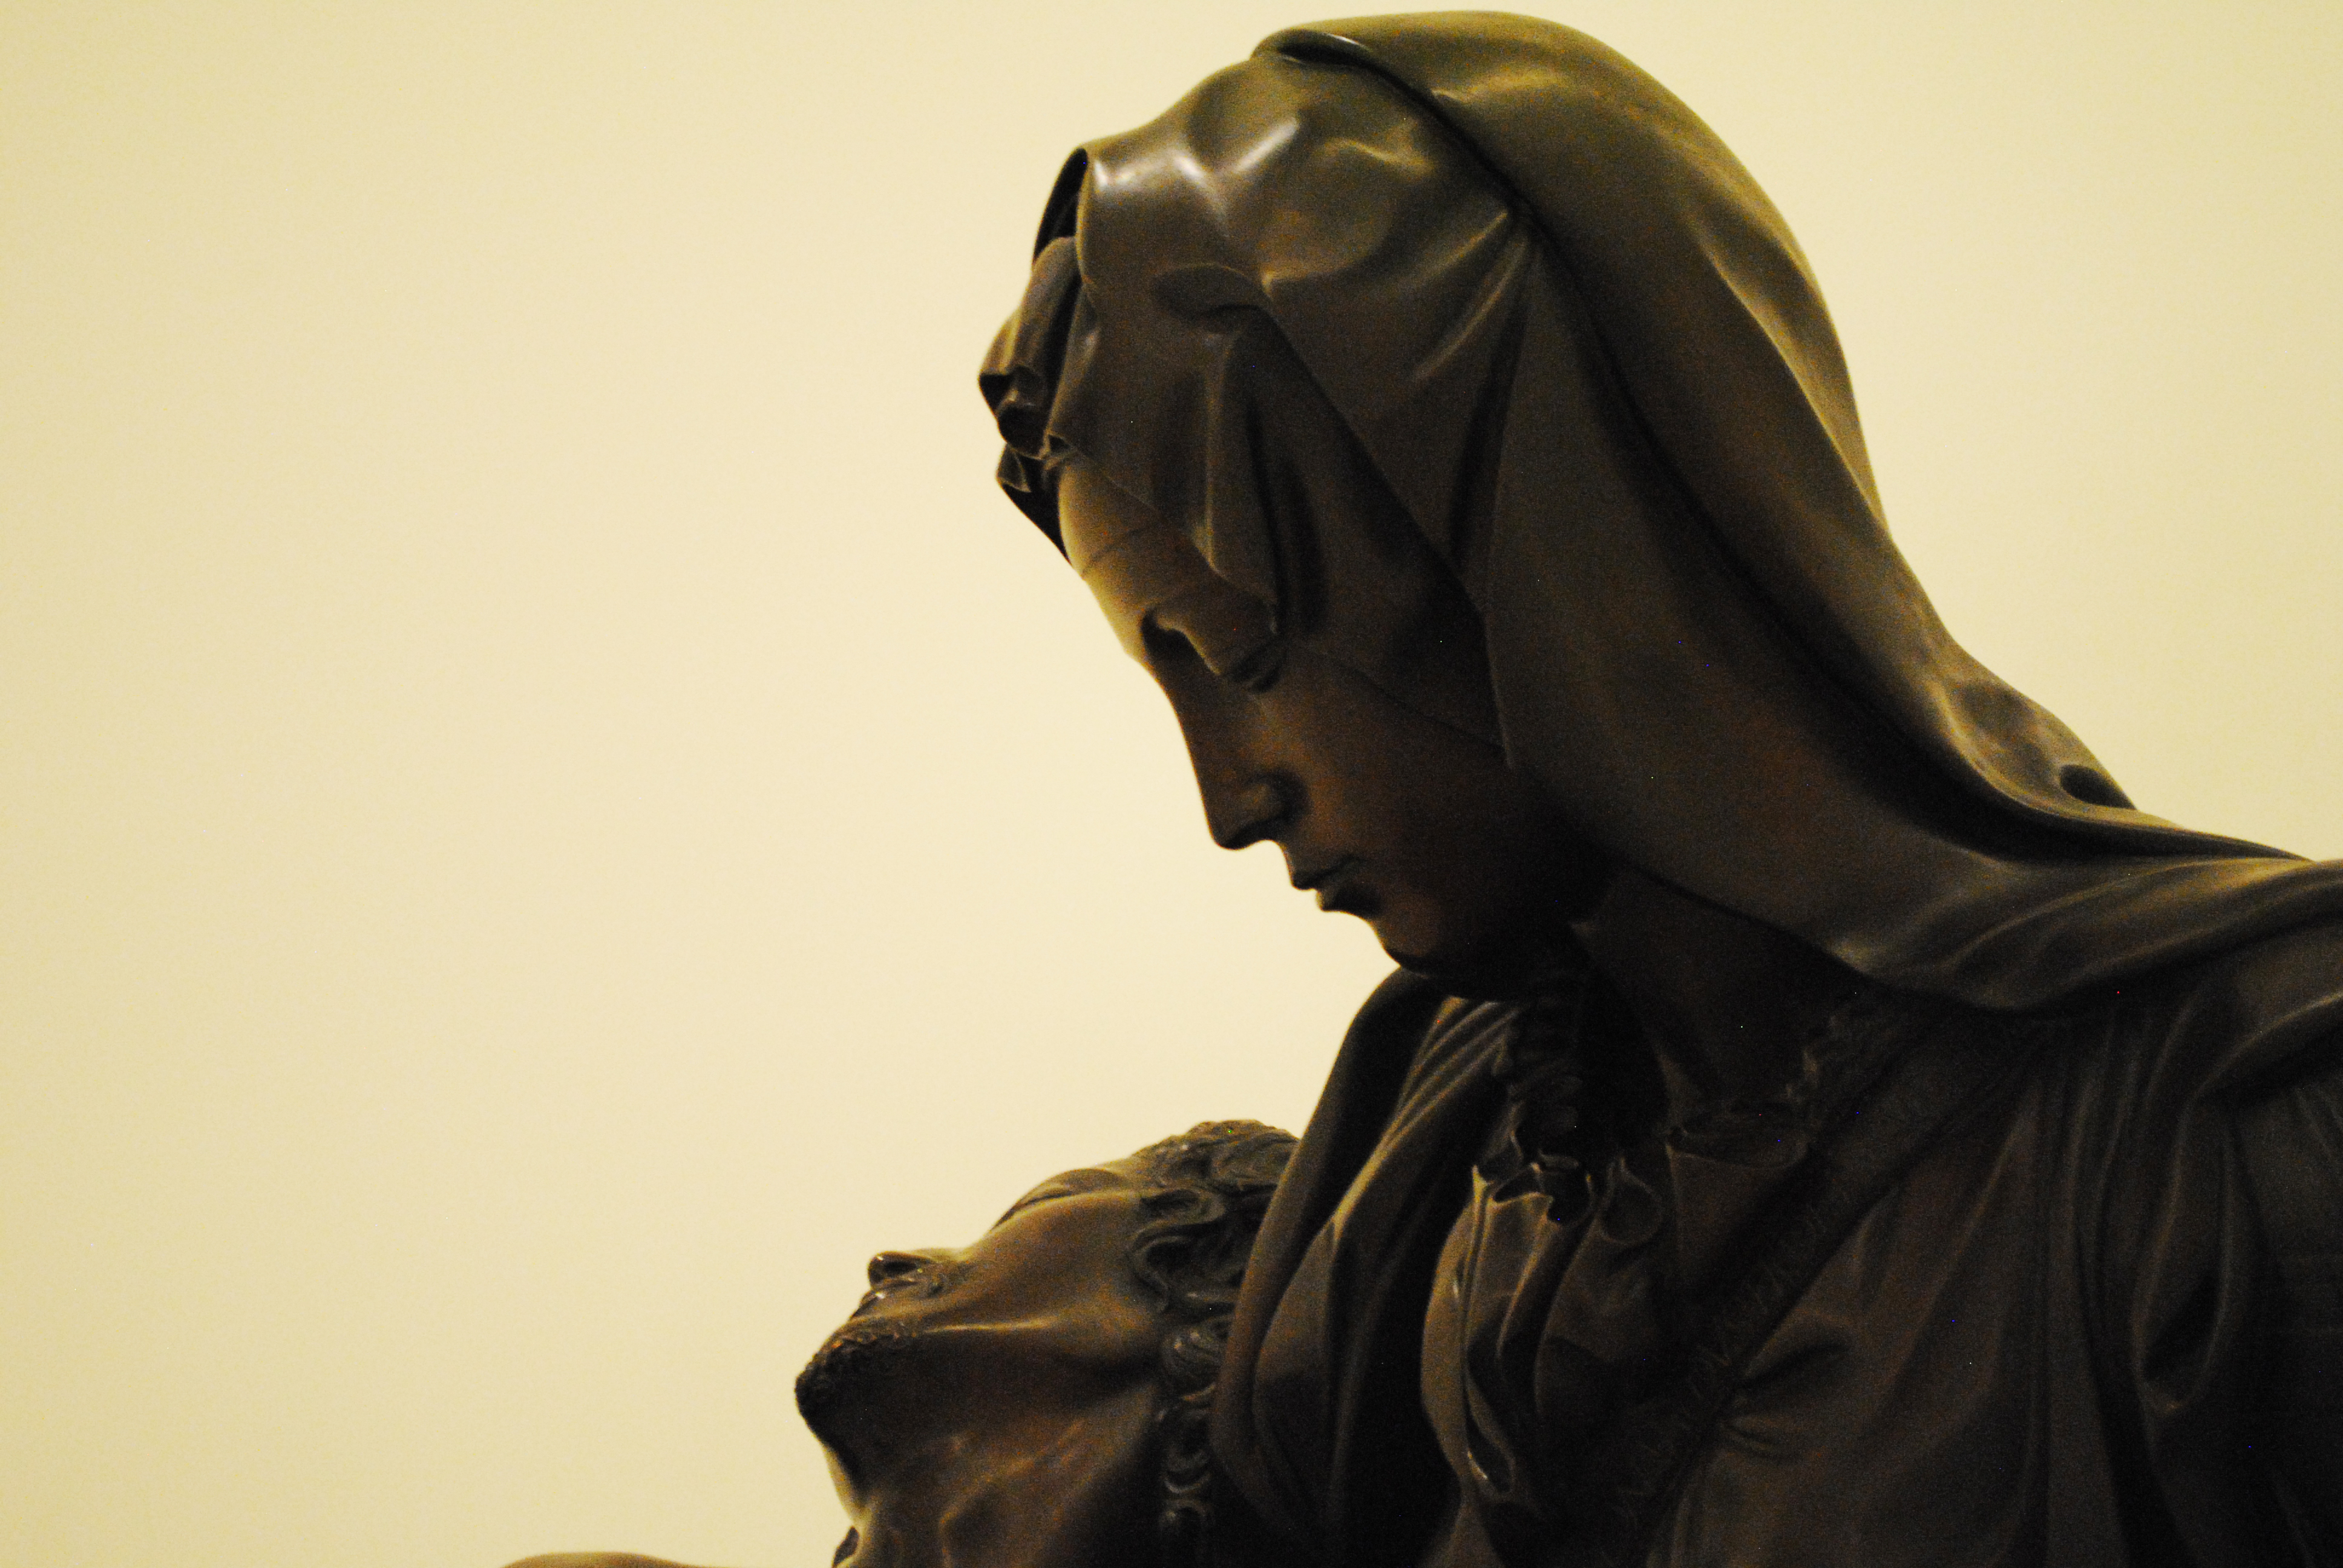 Michelangelo's Pietà in a bronze casting by Ferdinando Marinelli, 1932, certified by the Foundation Buonarotti - Museo Soumaya (Miguel_Ángel_Buonarrotis_Pietà_bronze_replica_at_Museo_Soumaya_07.jpg) (CC BY-SA 4.0 [https://creativecommons.org/licenses/by-sa/4.0/deed.en]), via Wikimedia Commons